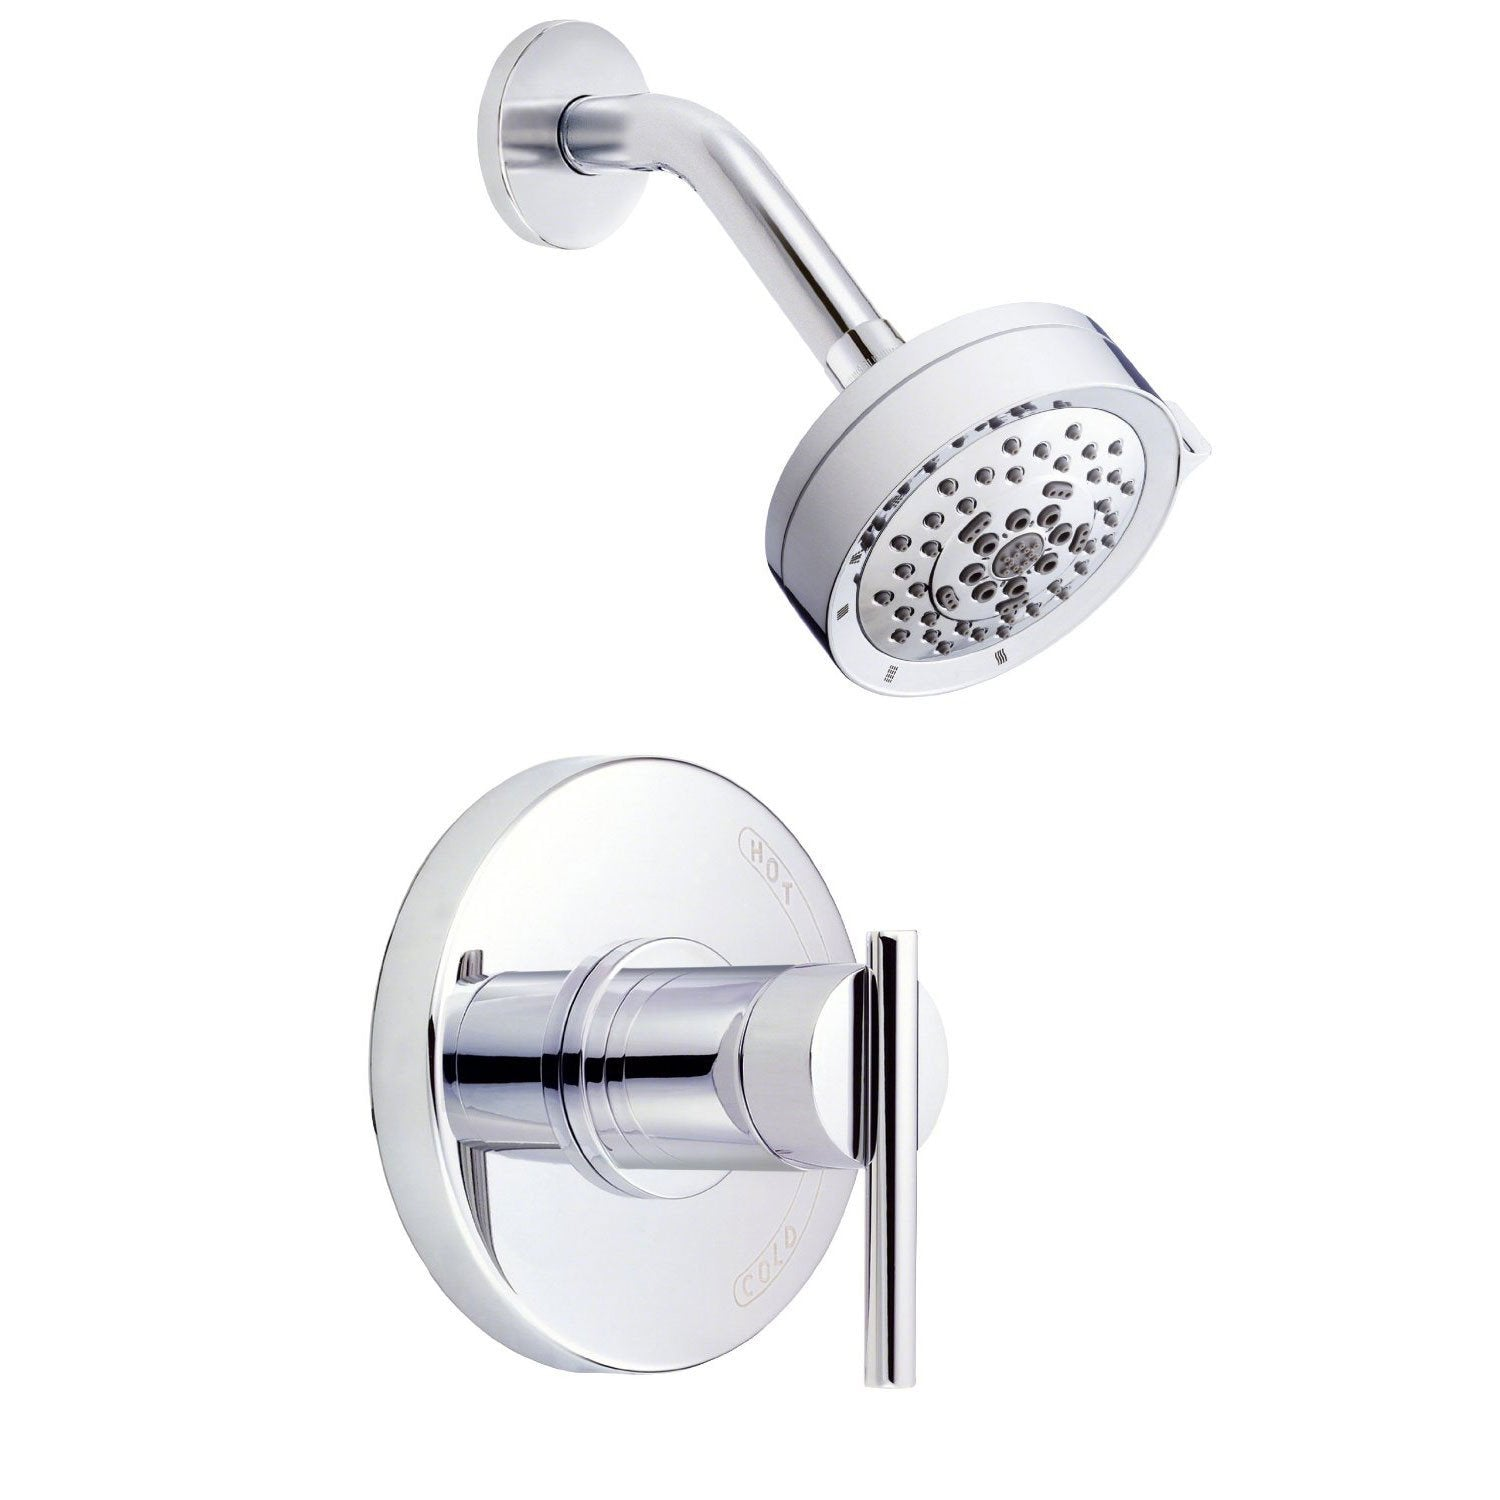 Danze Parma Modern Chrome Single Lever Handle Shower Only Faucet INCLUDES Rough-in Valve